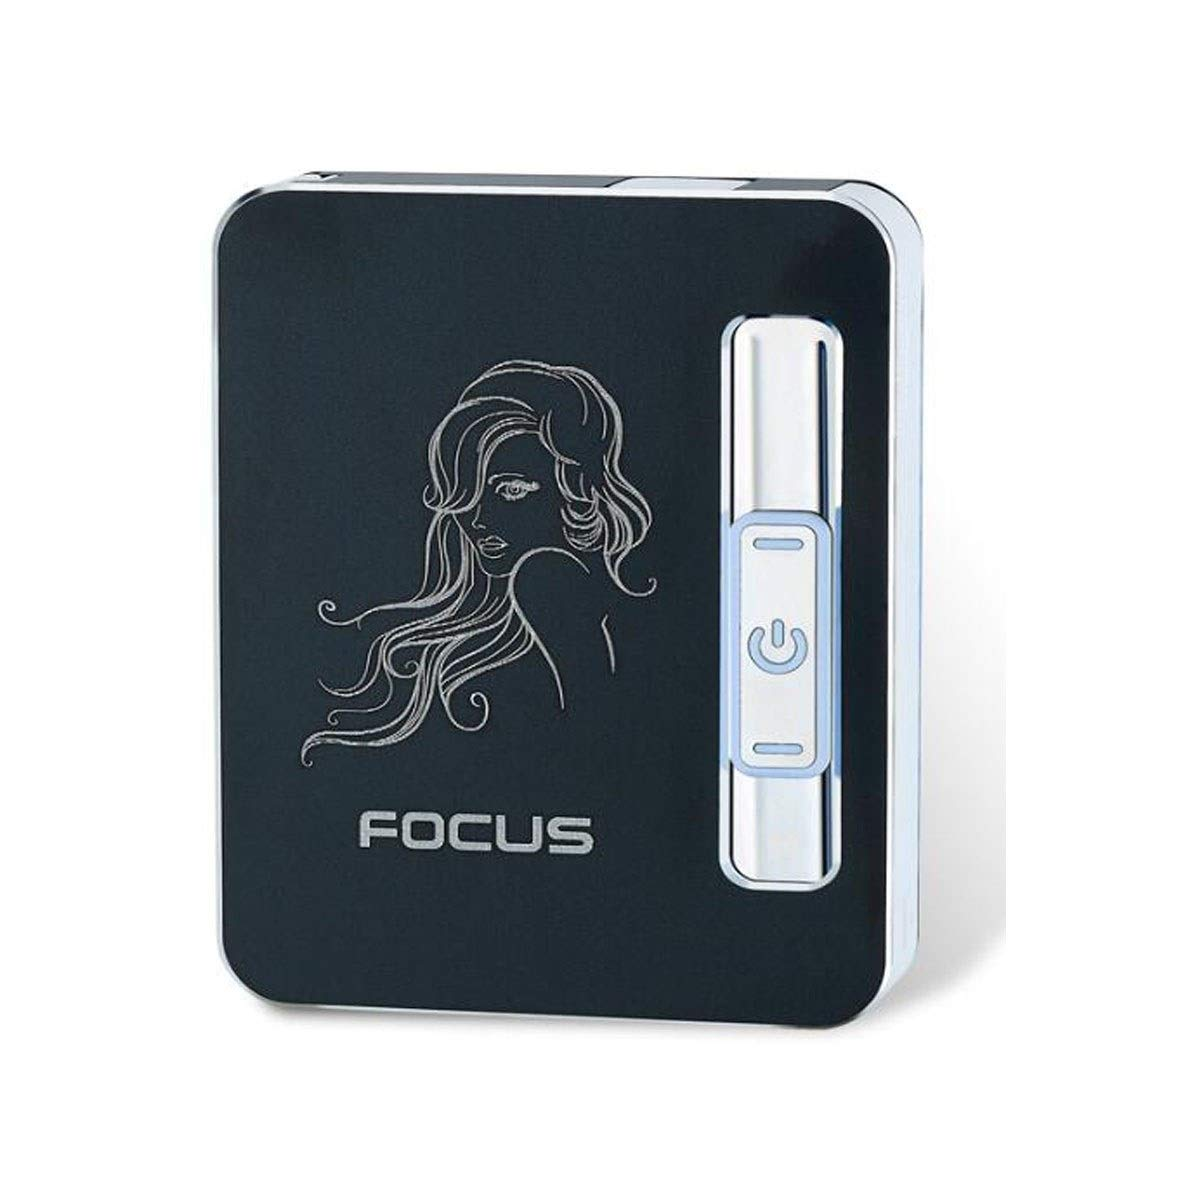 Gaoxingbianlidian Cigarette Case: Portable Aluminum Cigarette Pack can Hold 10 Cigarettes, Suitable for Smokers' Creative and Windproof Personalized Cigarette Packs, Multi-Color Optional